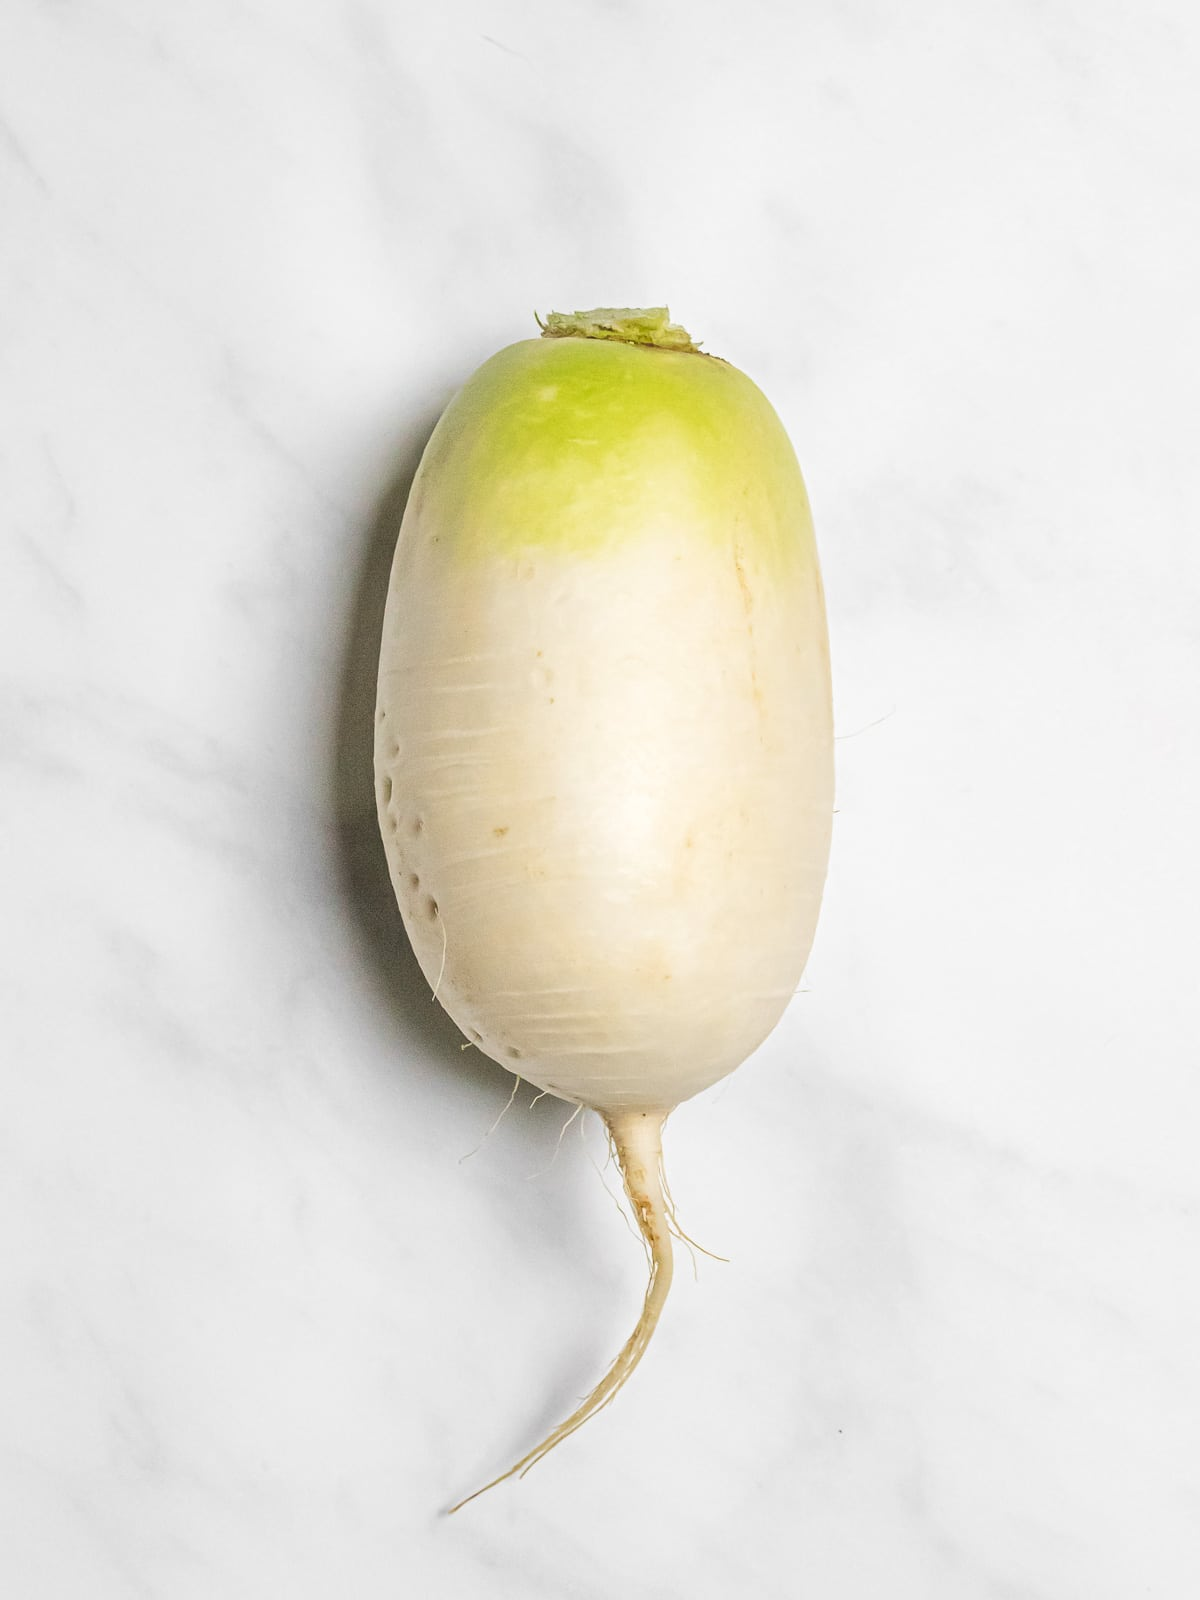 Korean radish on a marble board